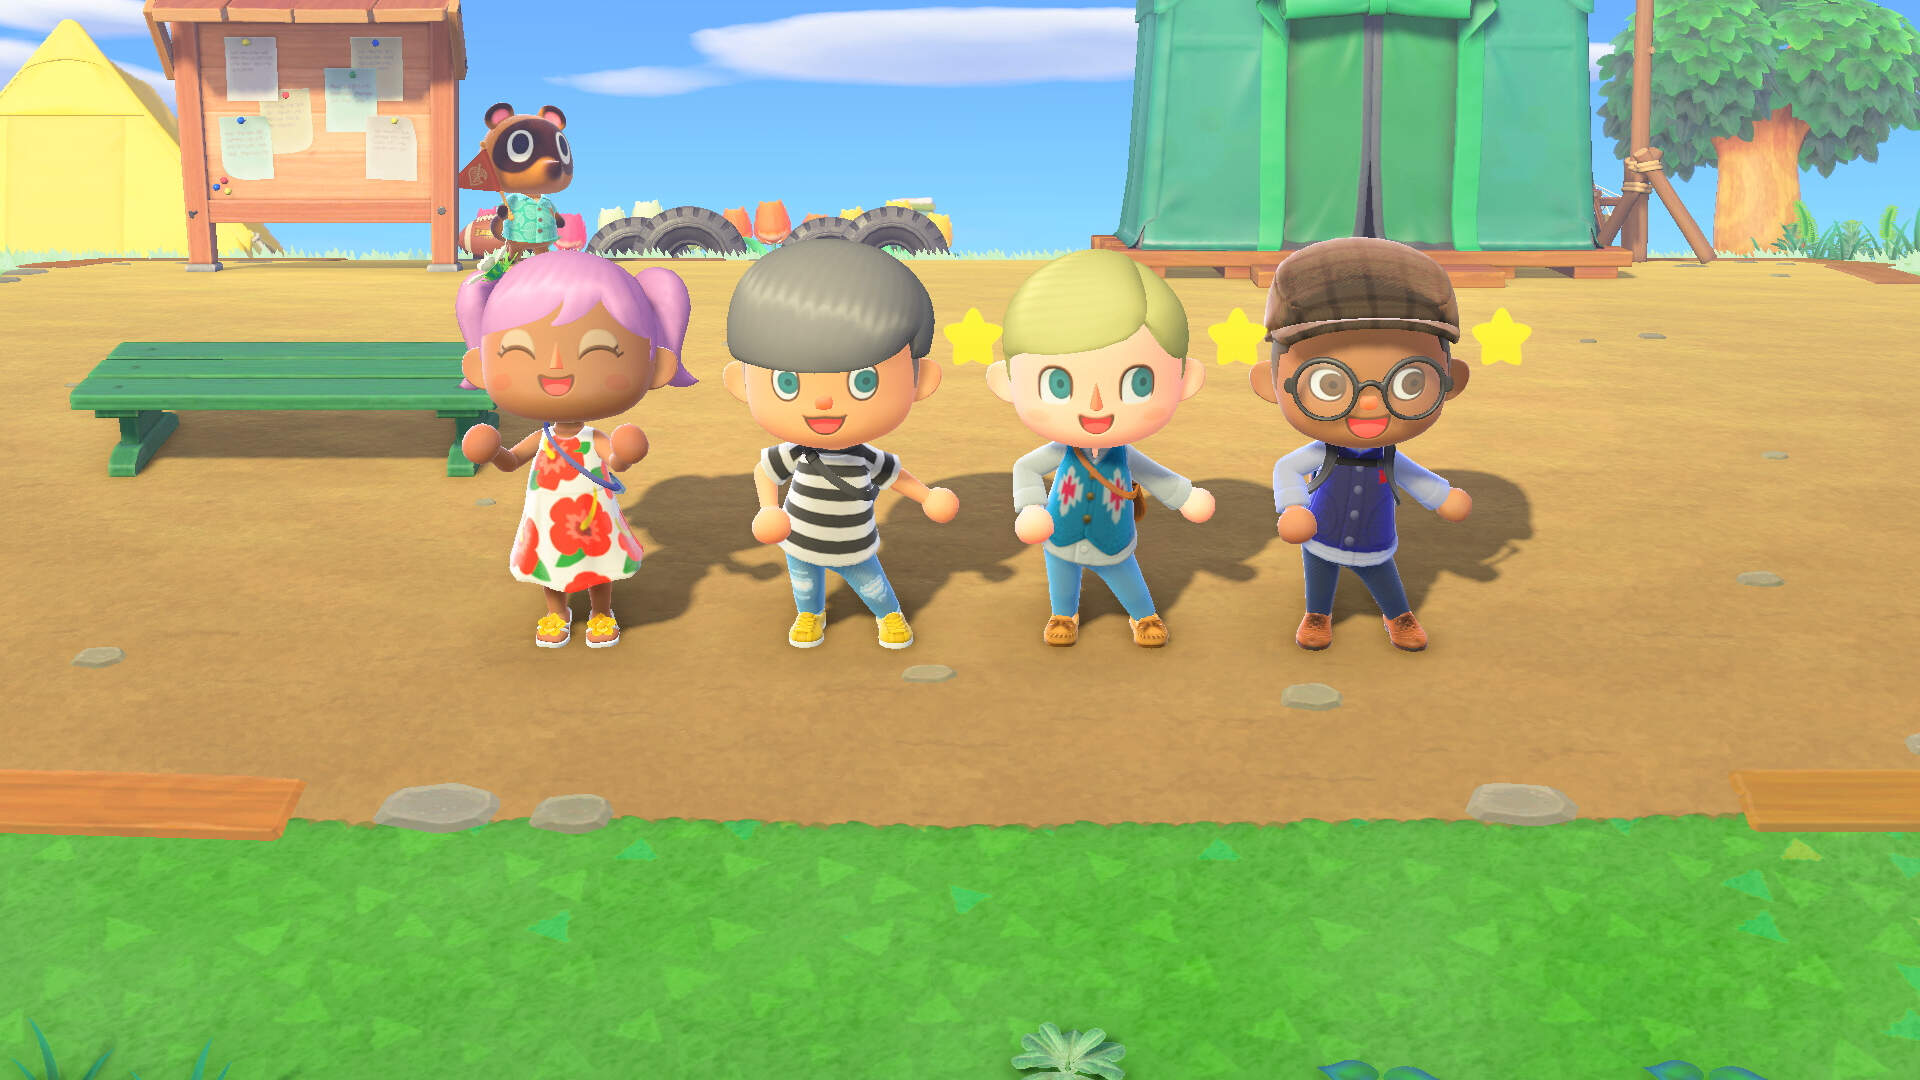 Animal Crossing: New Horizons' Able Sisters Shop Sells More Clothing Than Ever Before